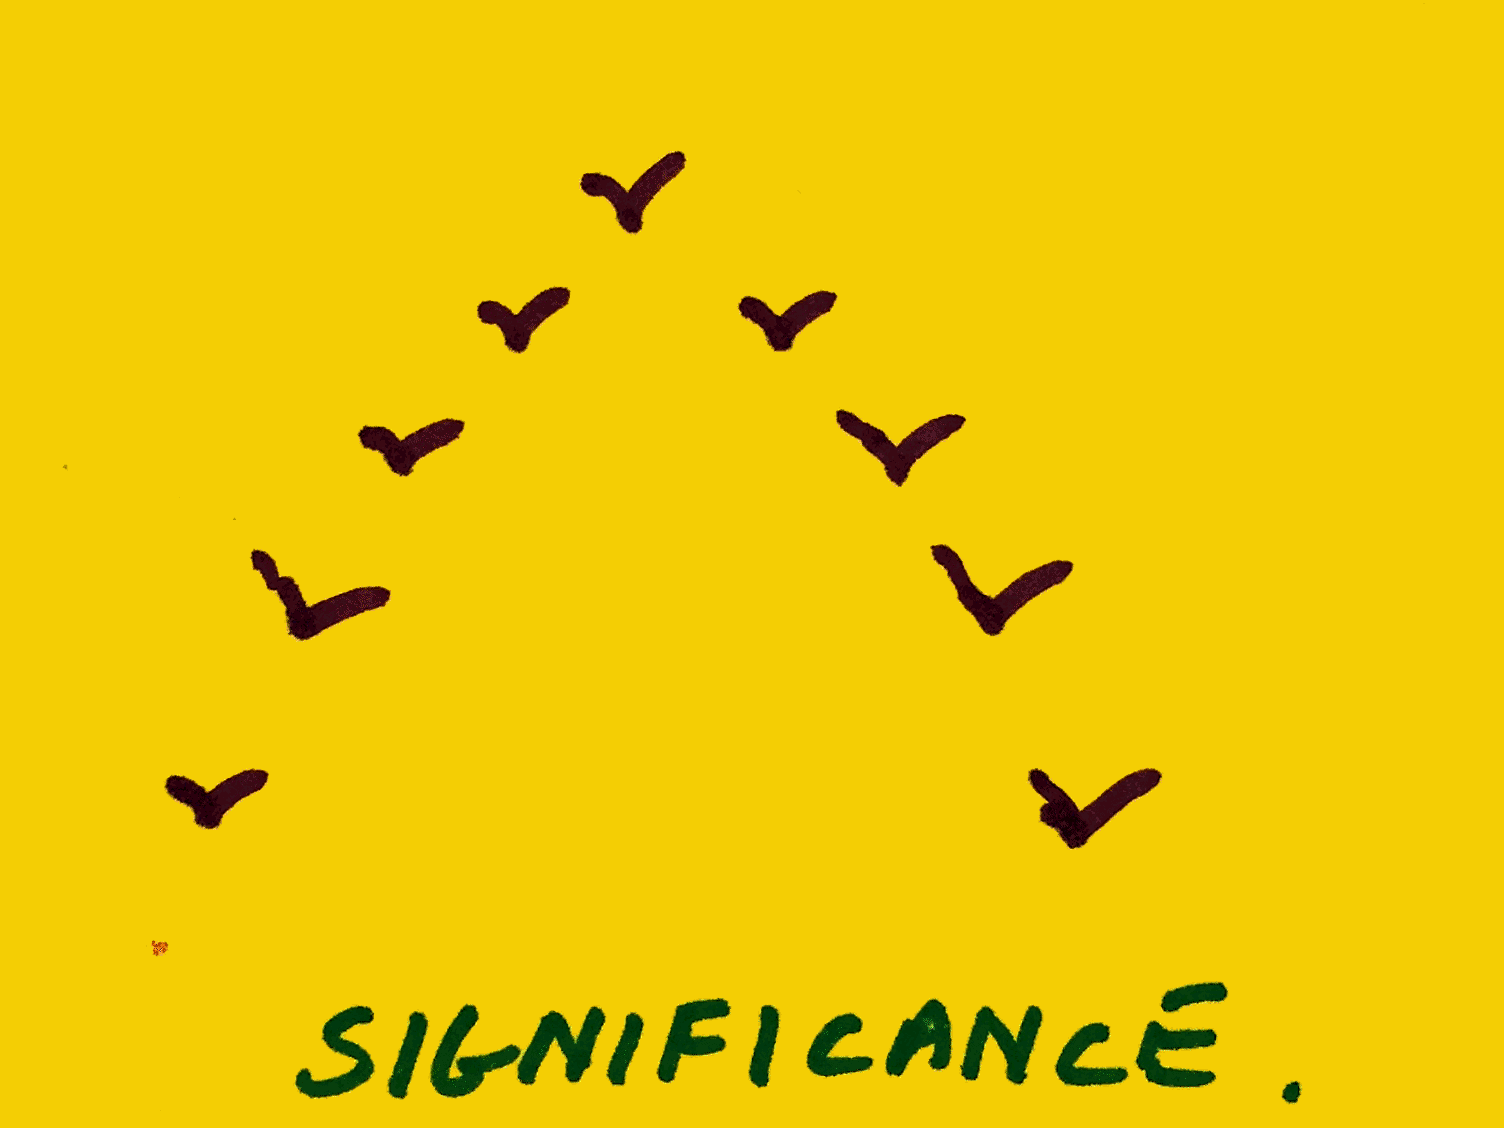 Significance StrengthsFinder Singapore Birds Alignment